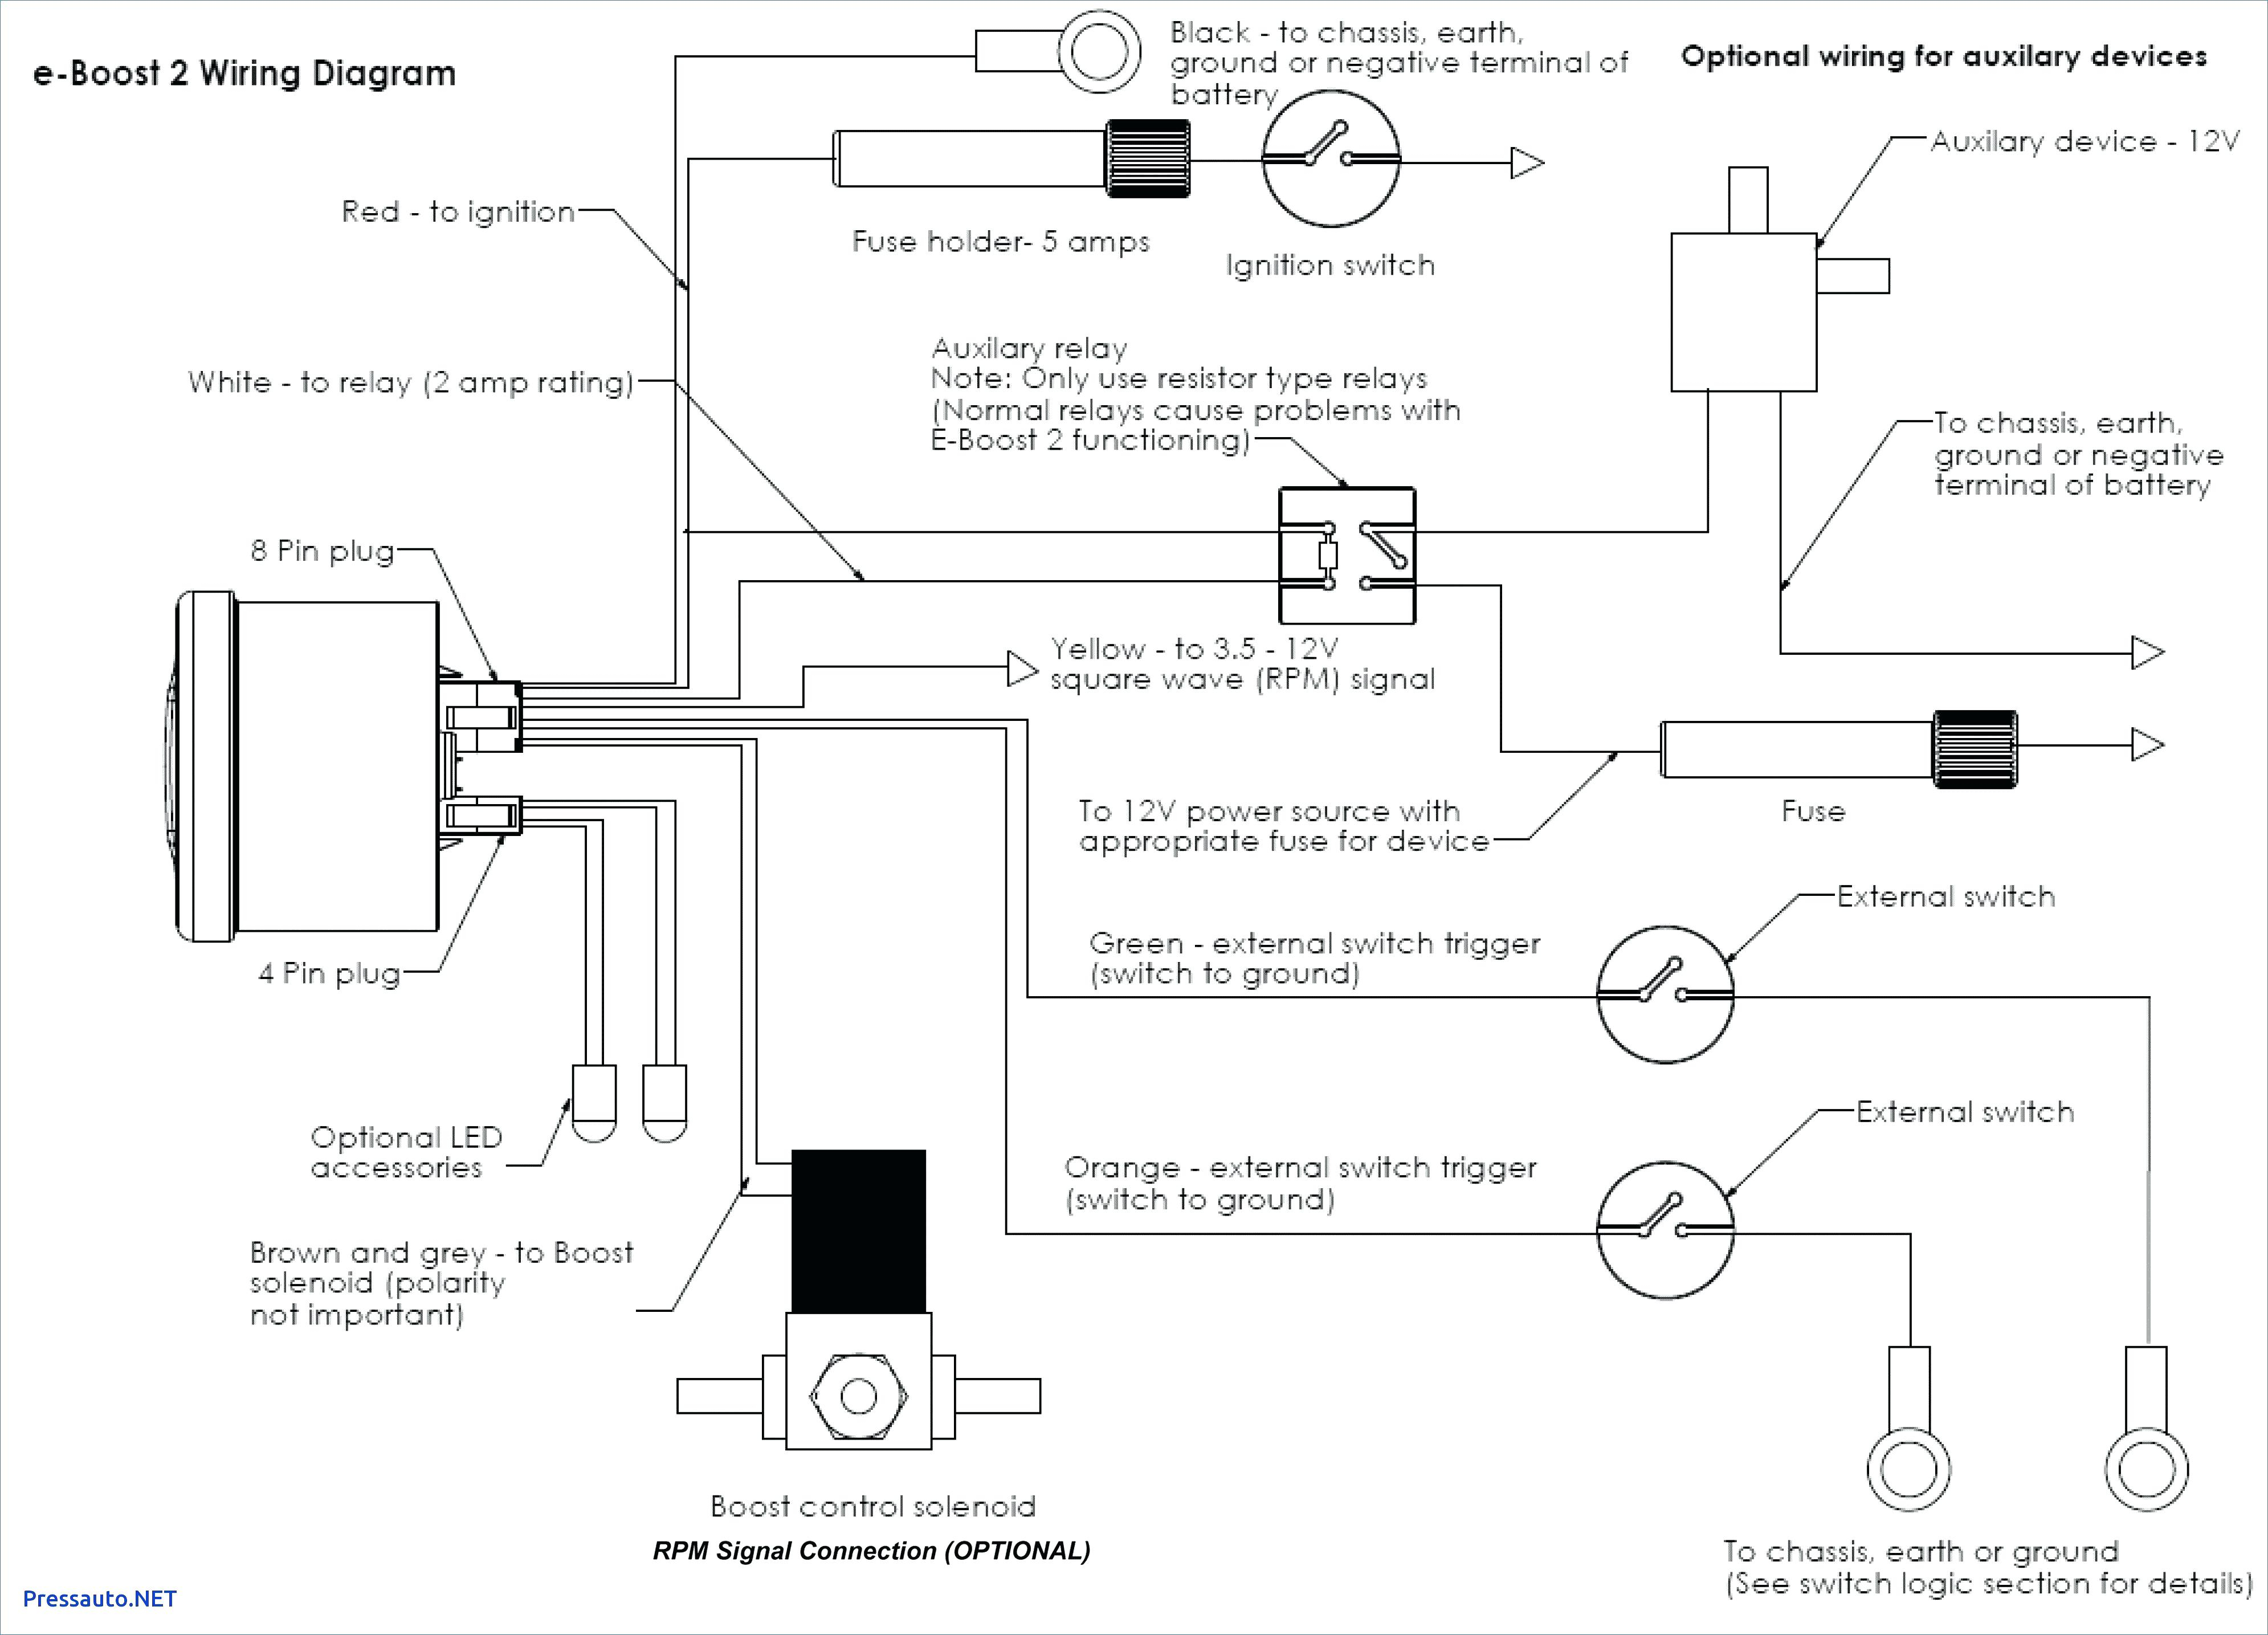 walk in cooler wiring diagram Download-Heatcraft Walk In Cooler Wiring Diagram Unique Walk In Freezer Troubleshooting Free Troubleshooting Examples 16-k